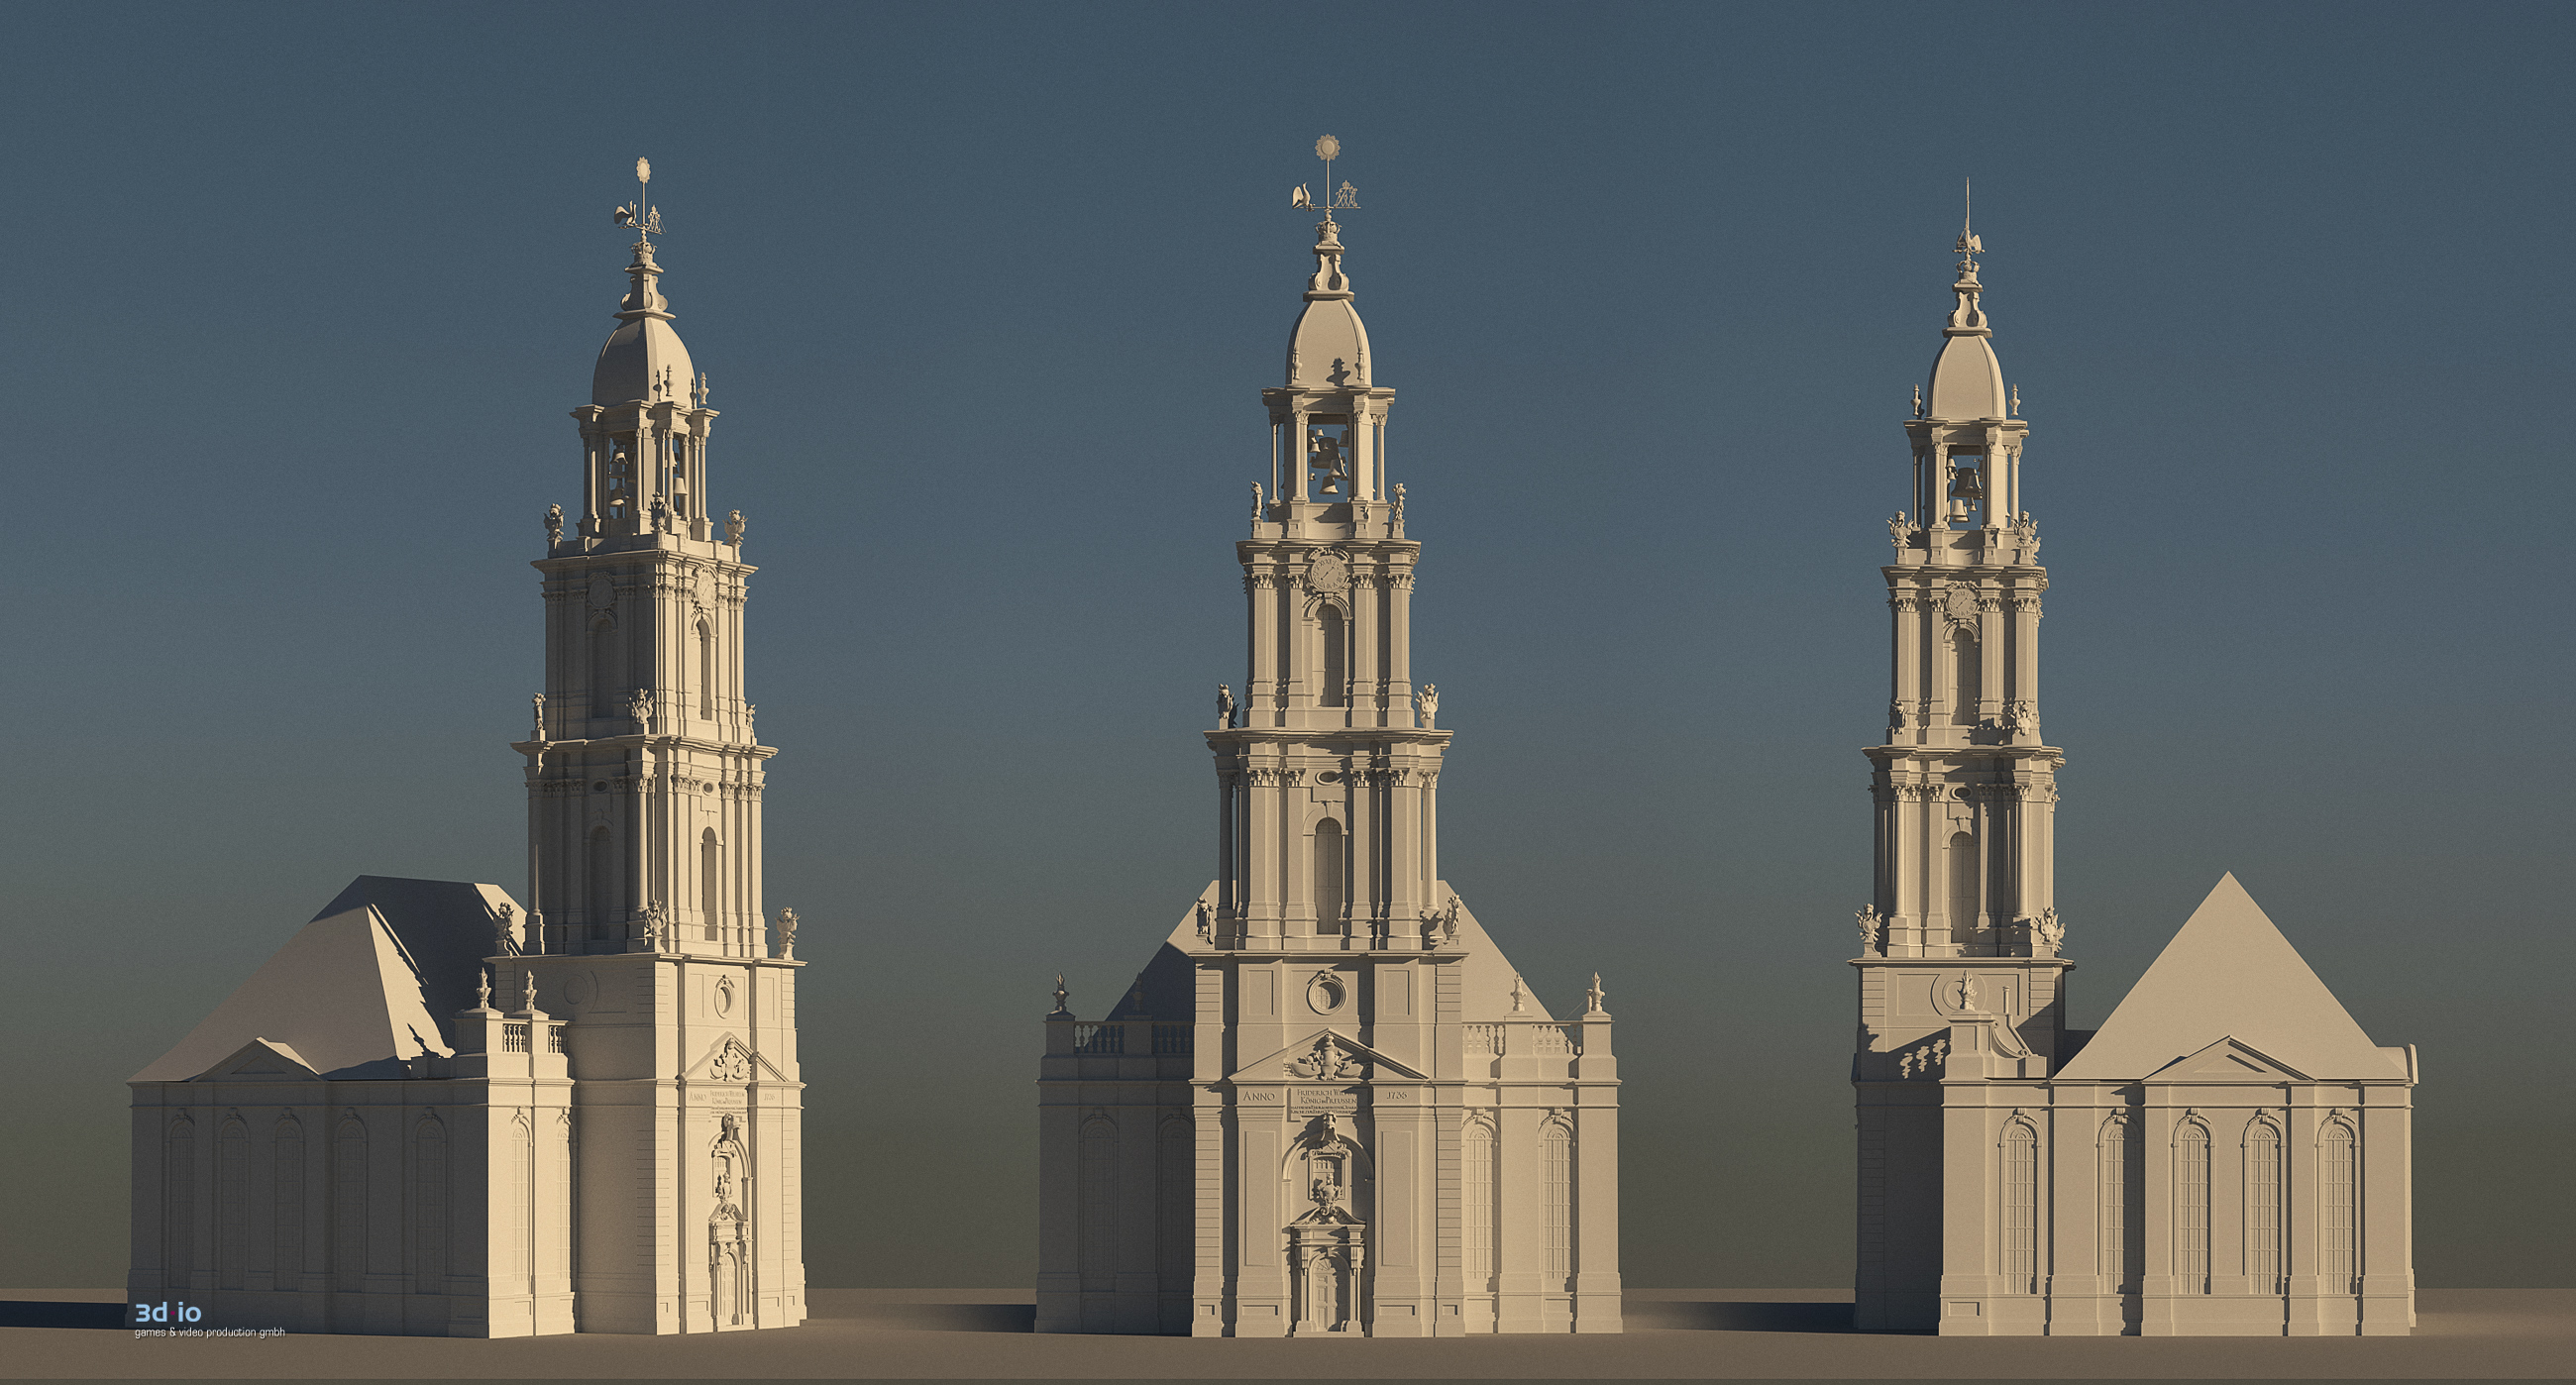 3d-io Garnisonkirche 3d construction